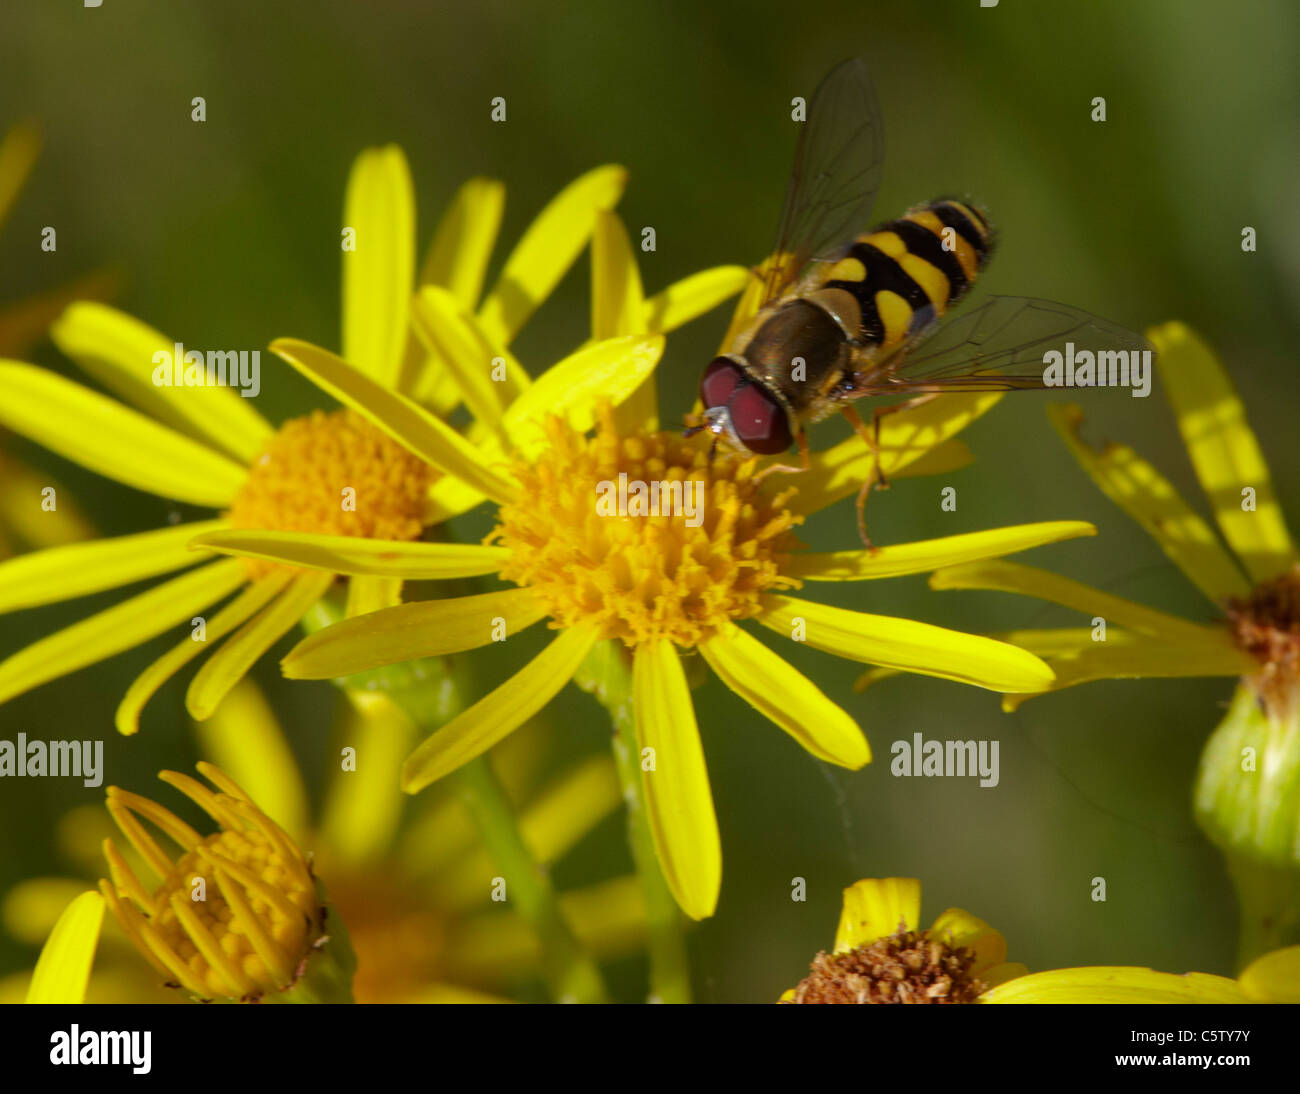 Hover Fly on Ragwort. Hurst Meadows, West Molesey, Surrey, England. - Stock Image